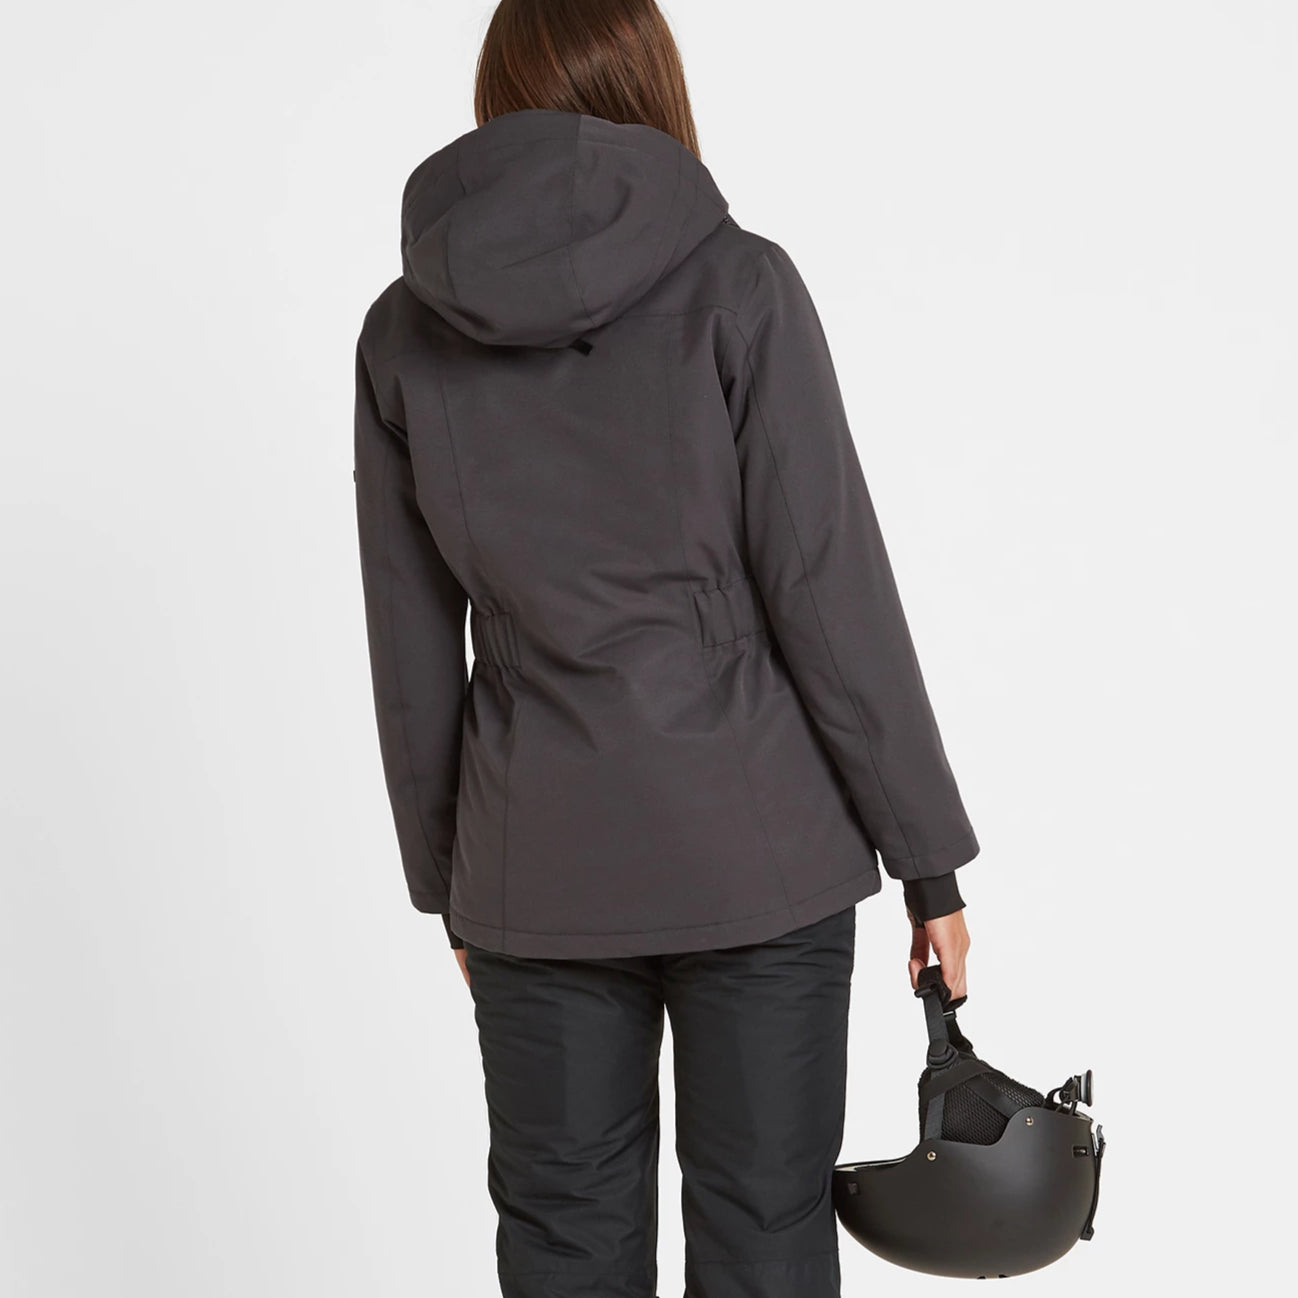 Cawood Womens Ski Jacket - Coal Grey